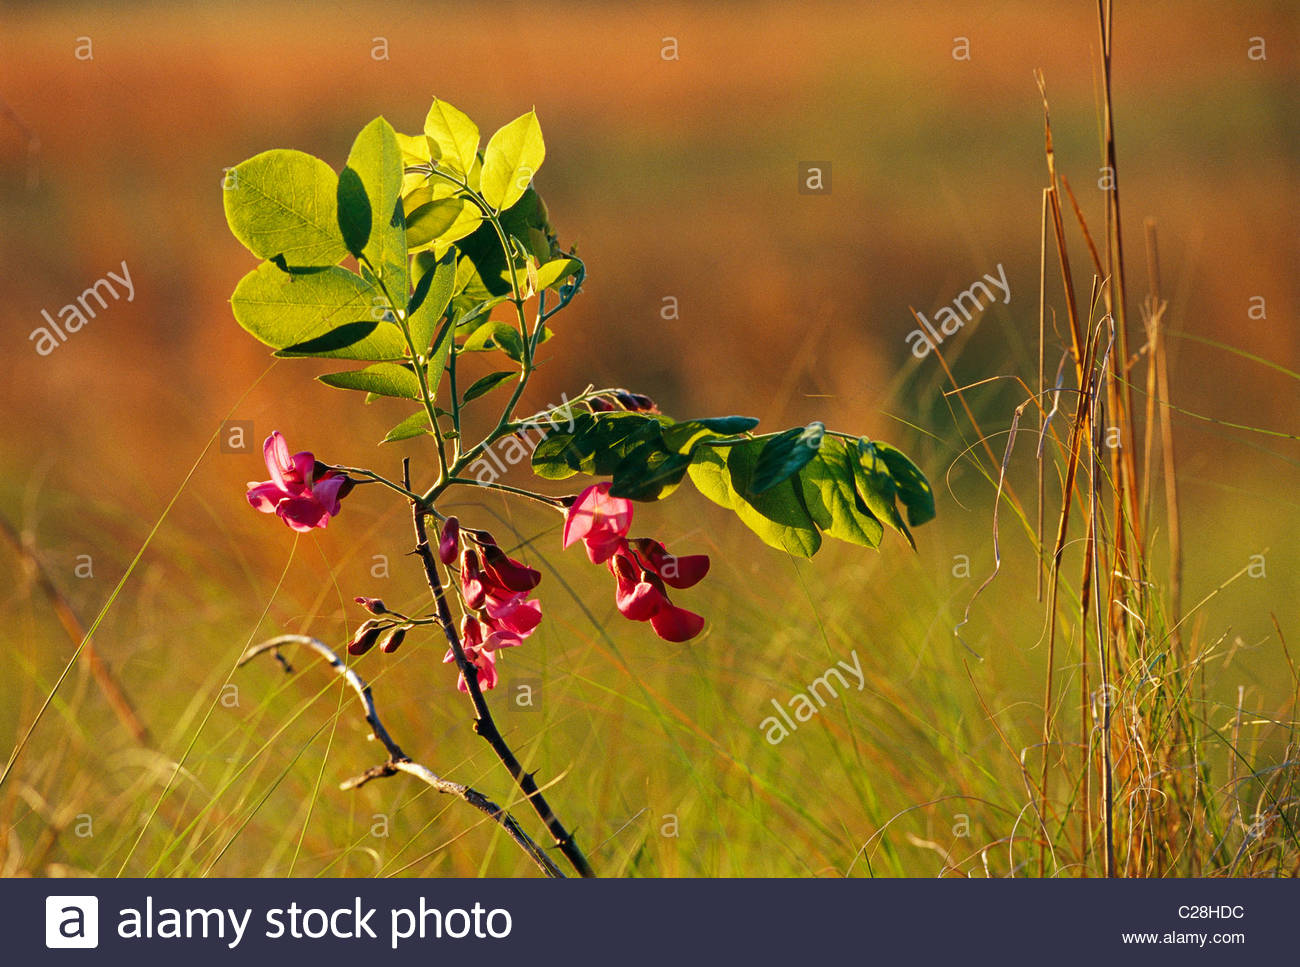 Flowers and leaves of a dwarf locust tree. - Stock Image